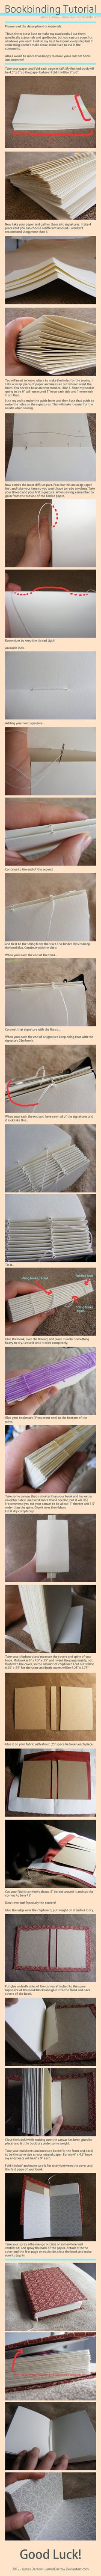 Bookbinding. Tutorial.